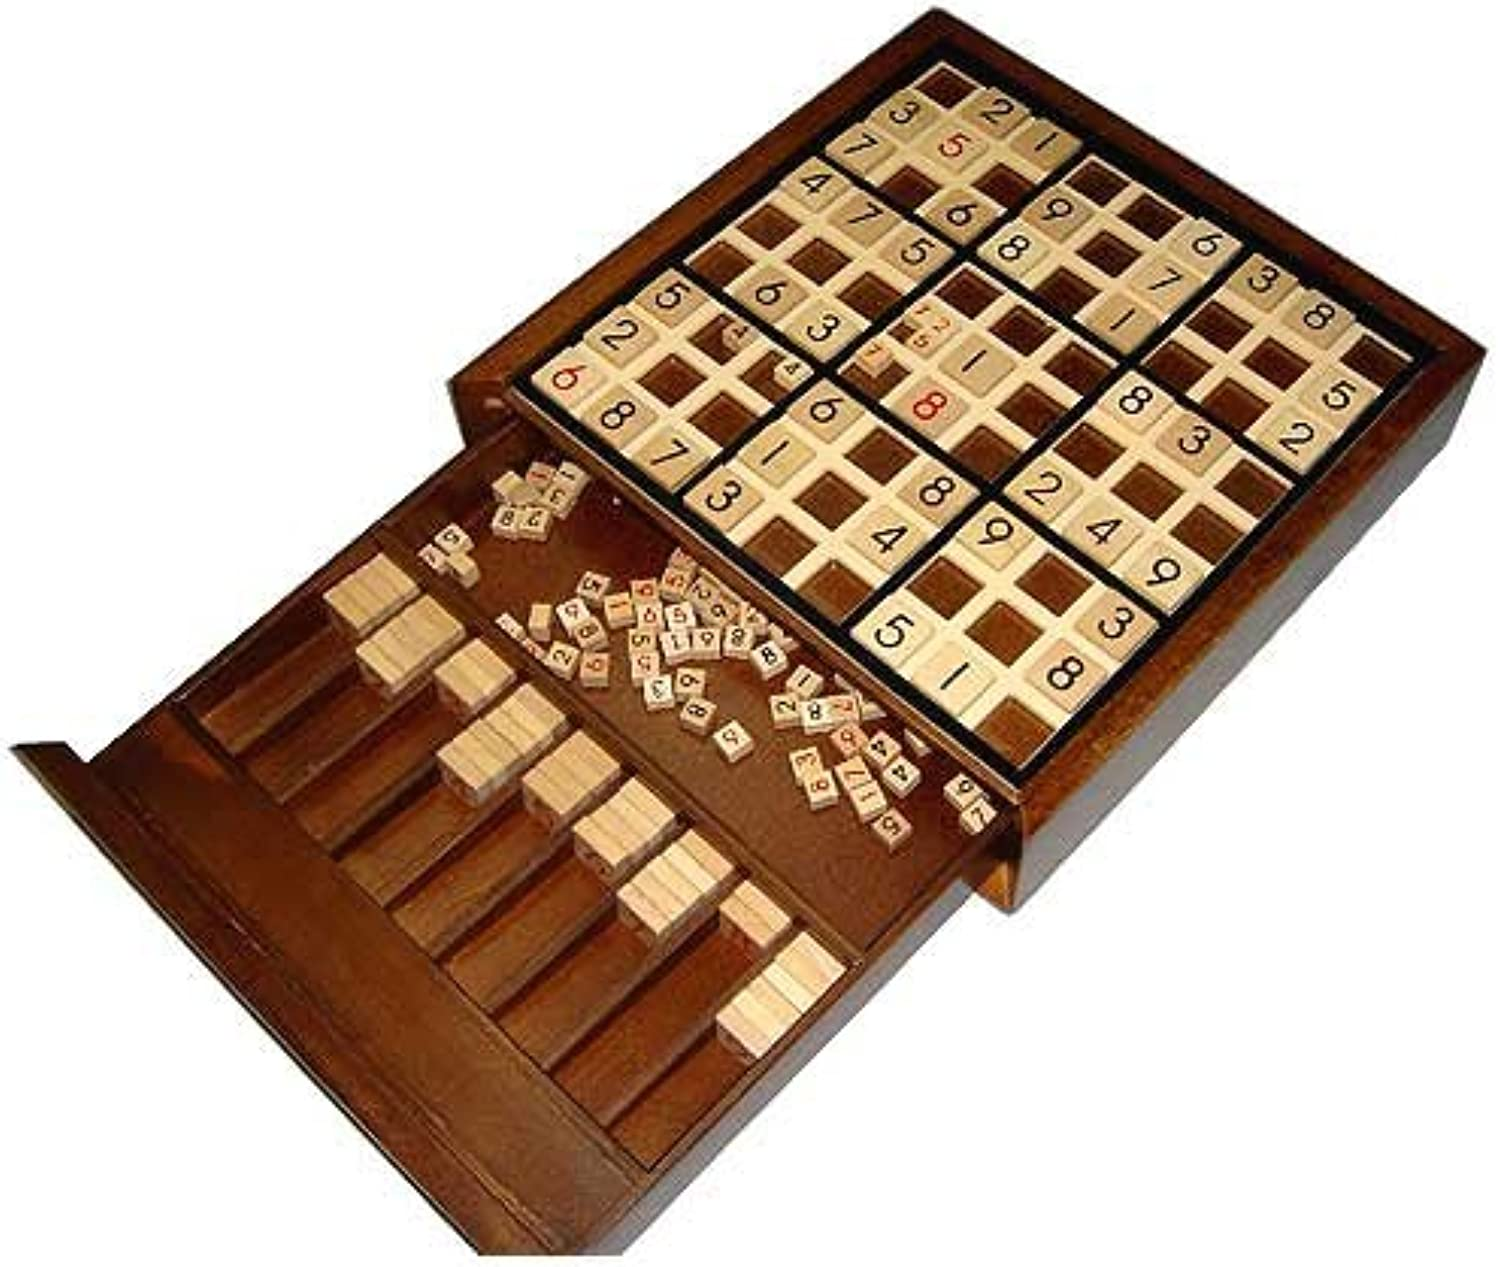 Wooden Deluxe Sudoku Board Game